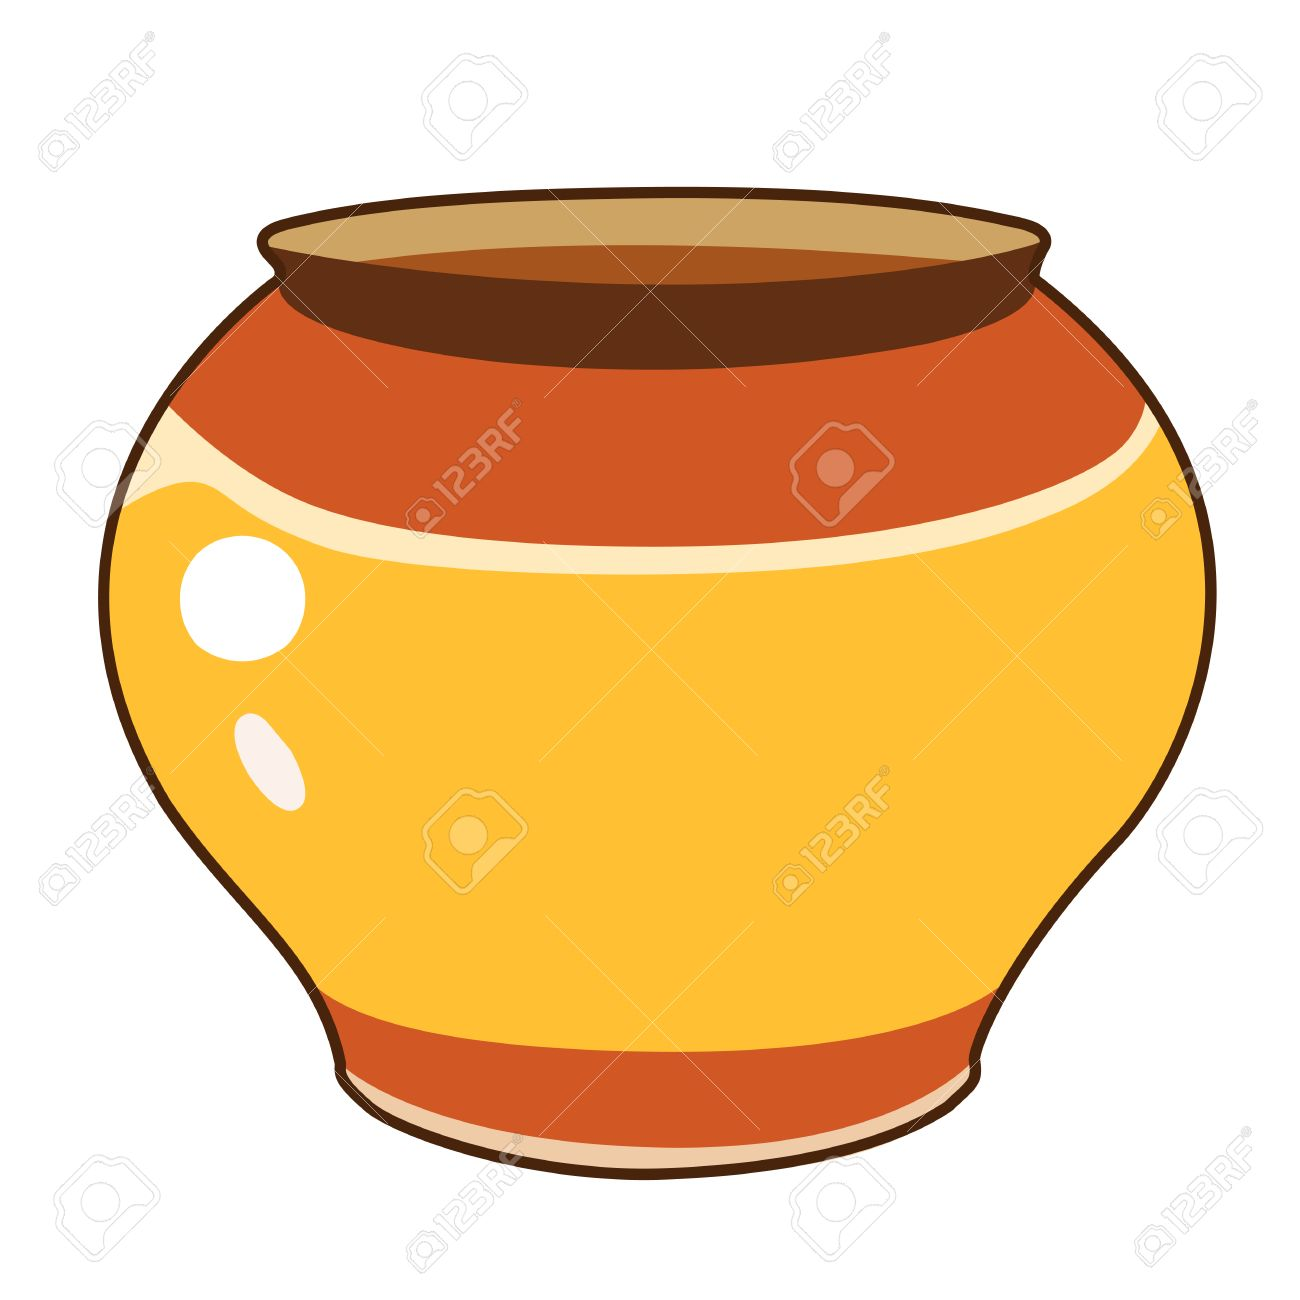 Clay pot isolated illustration on white background.